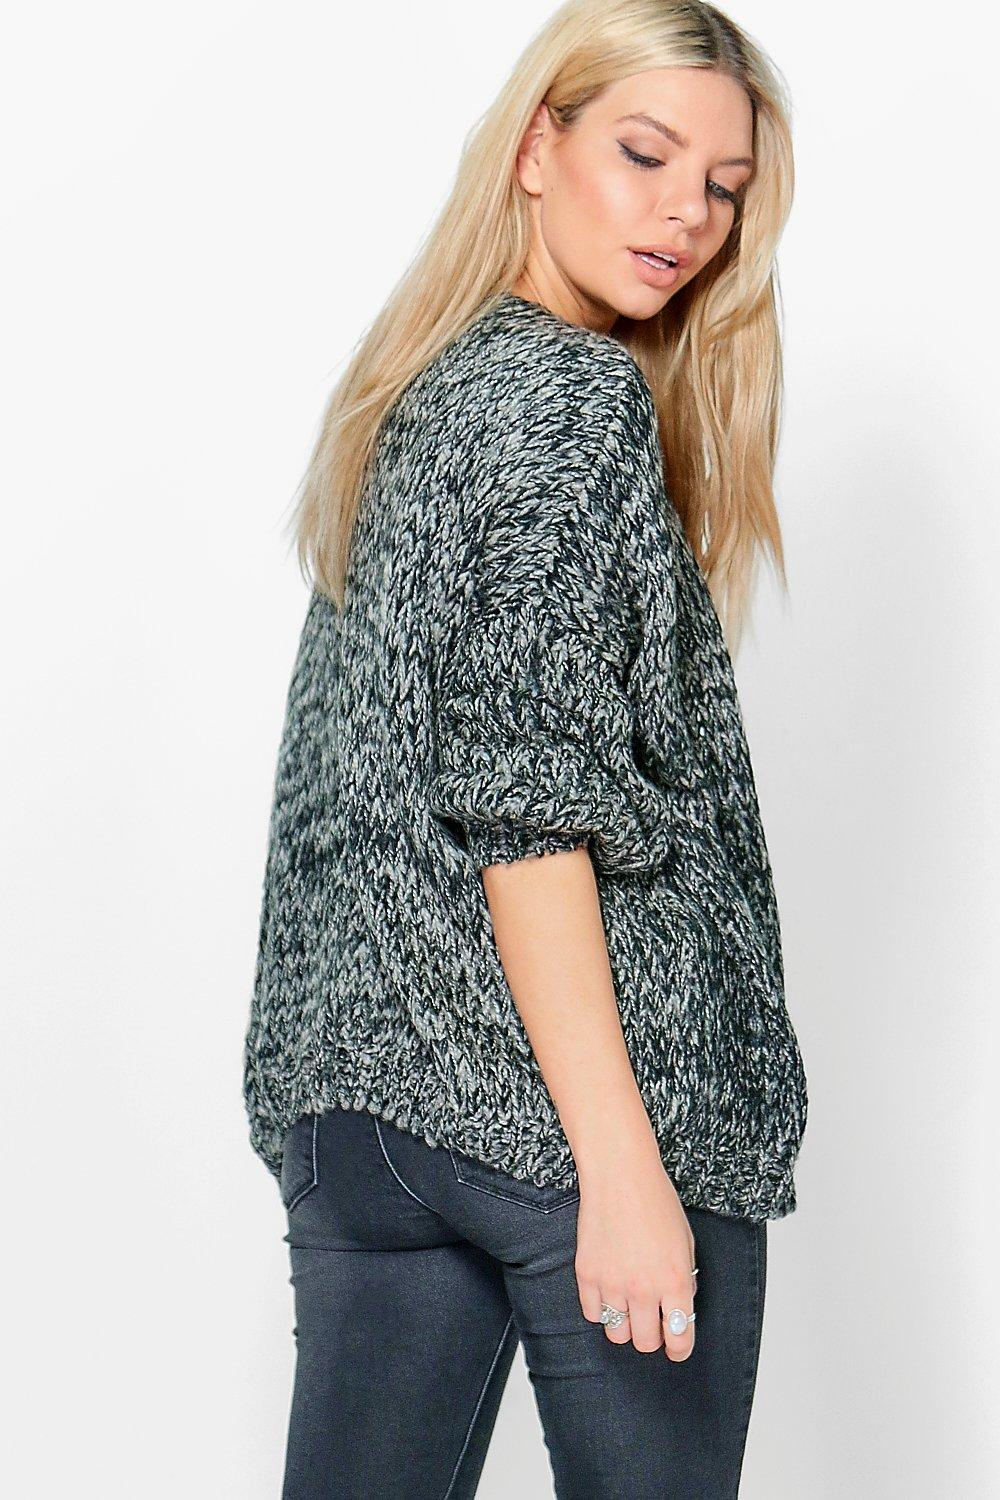 Find great deals on eBay for Oversized Knit Cardigan in Women's Clothing and Sweaters. Shop with confidence.